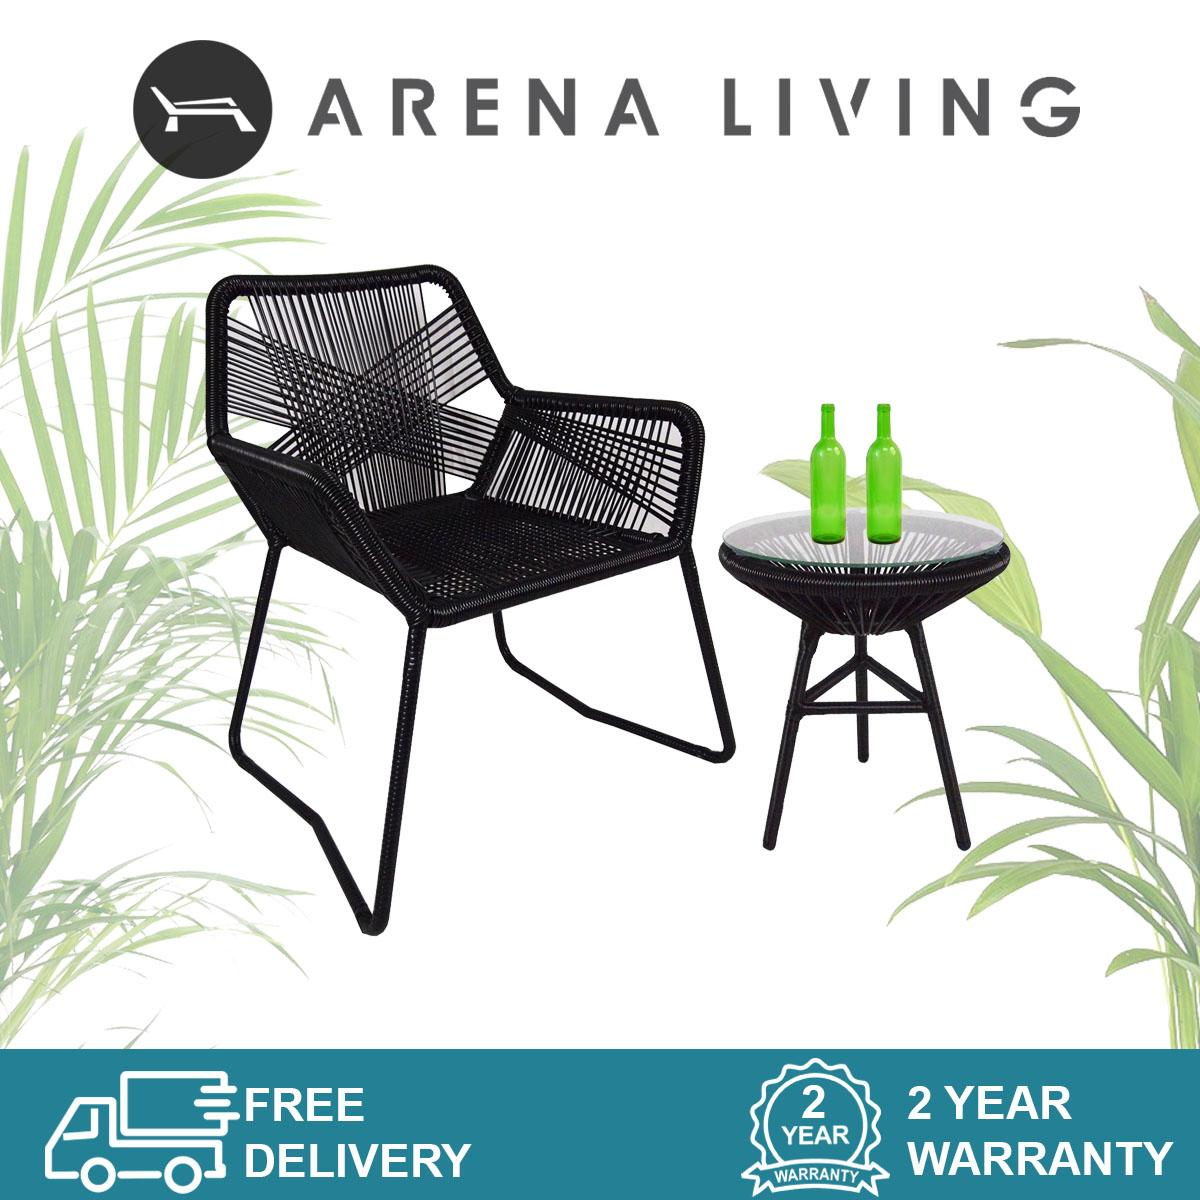 Bay 1 Chair + 1 Table Set Outdoor Furniture by Arena Living